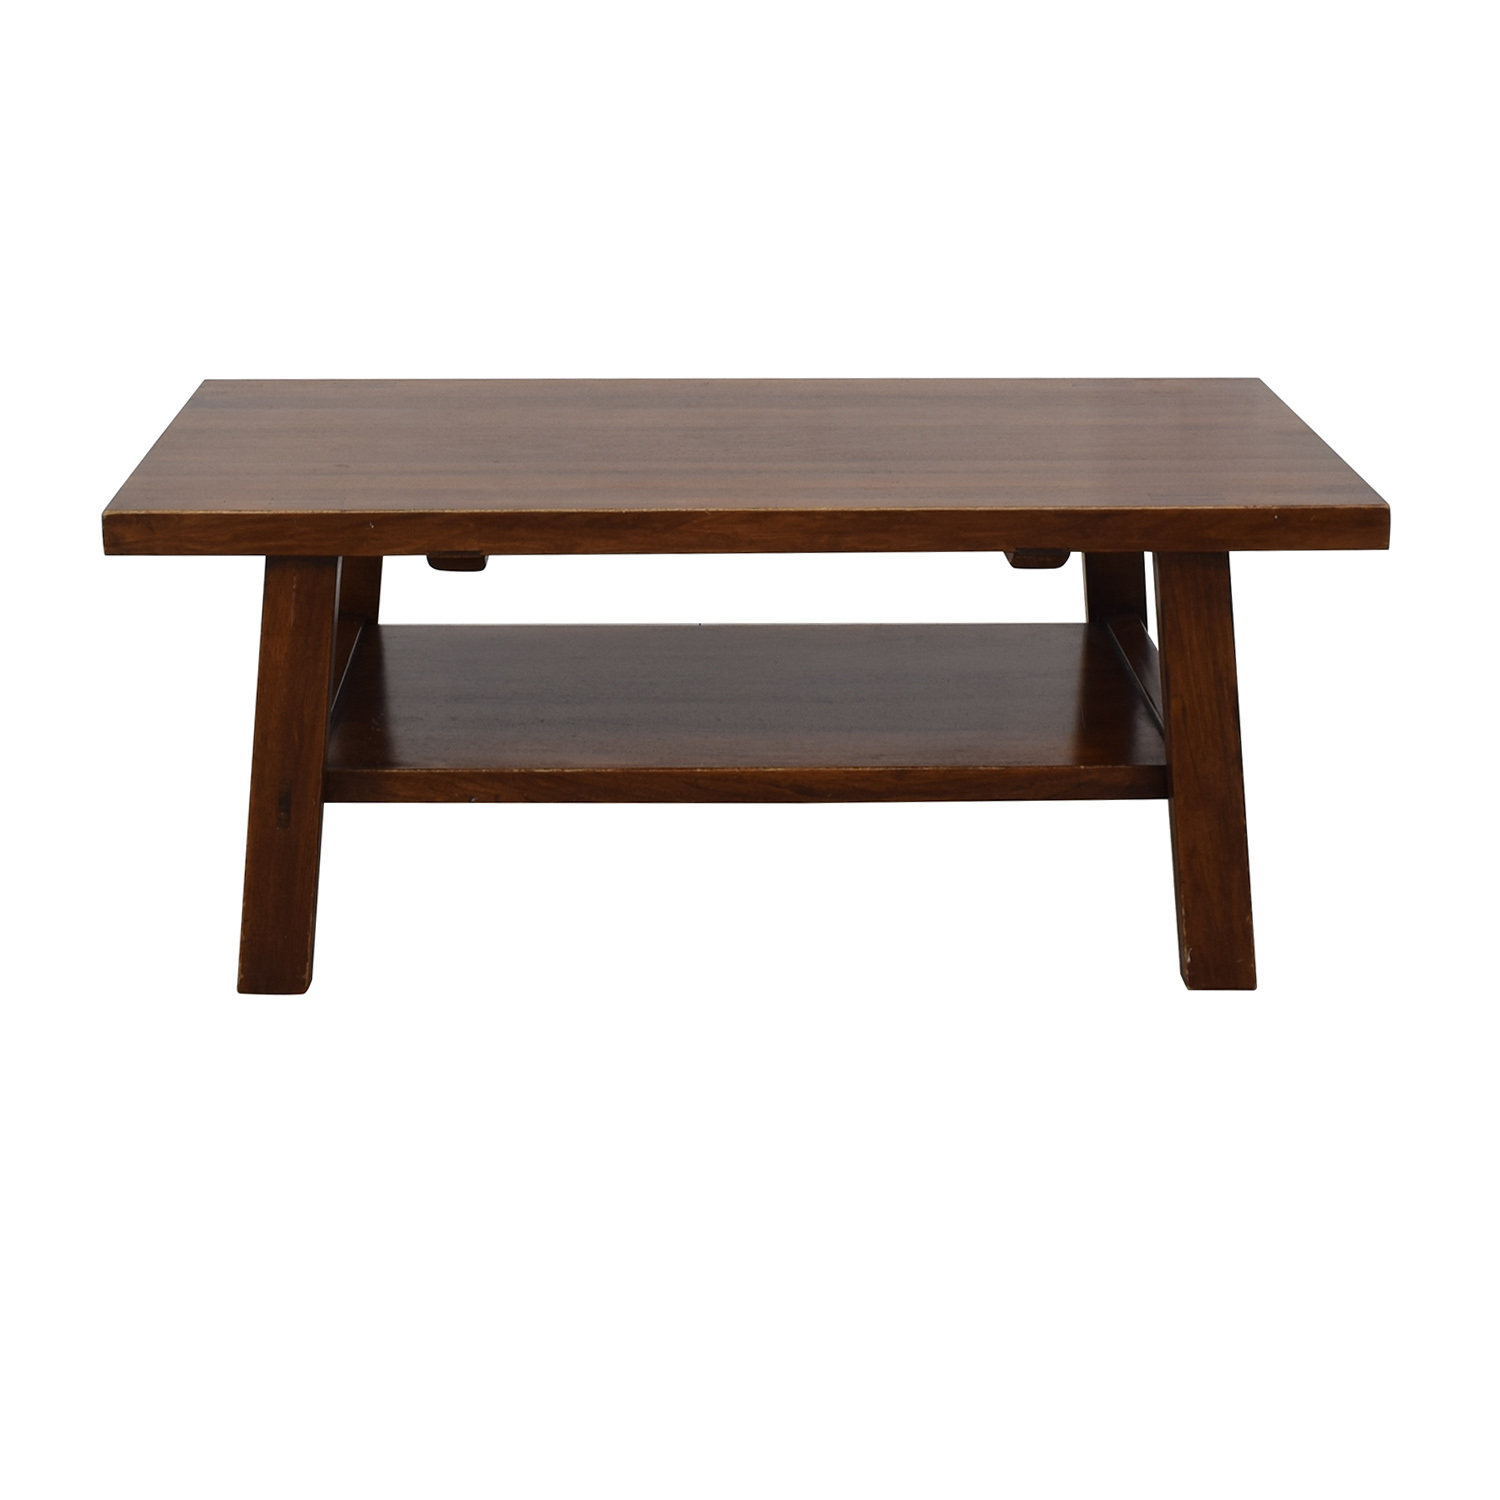 Two Tiered Rectangular Coffee Table price